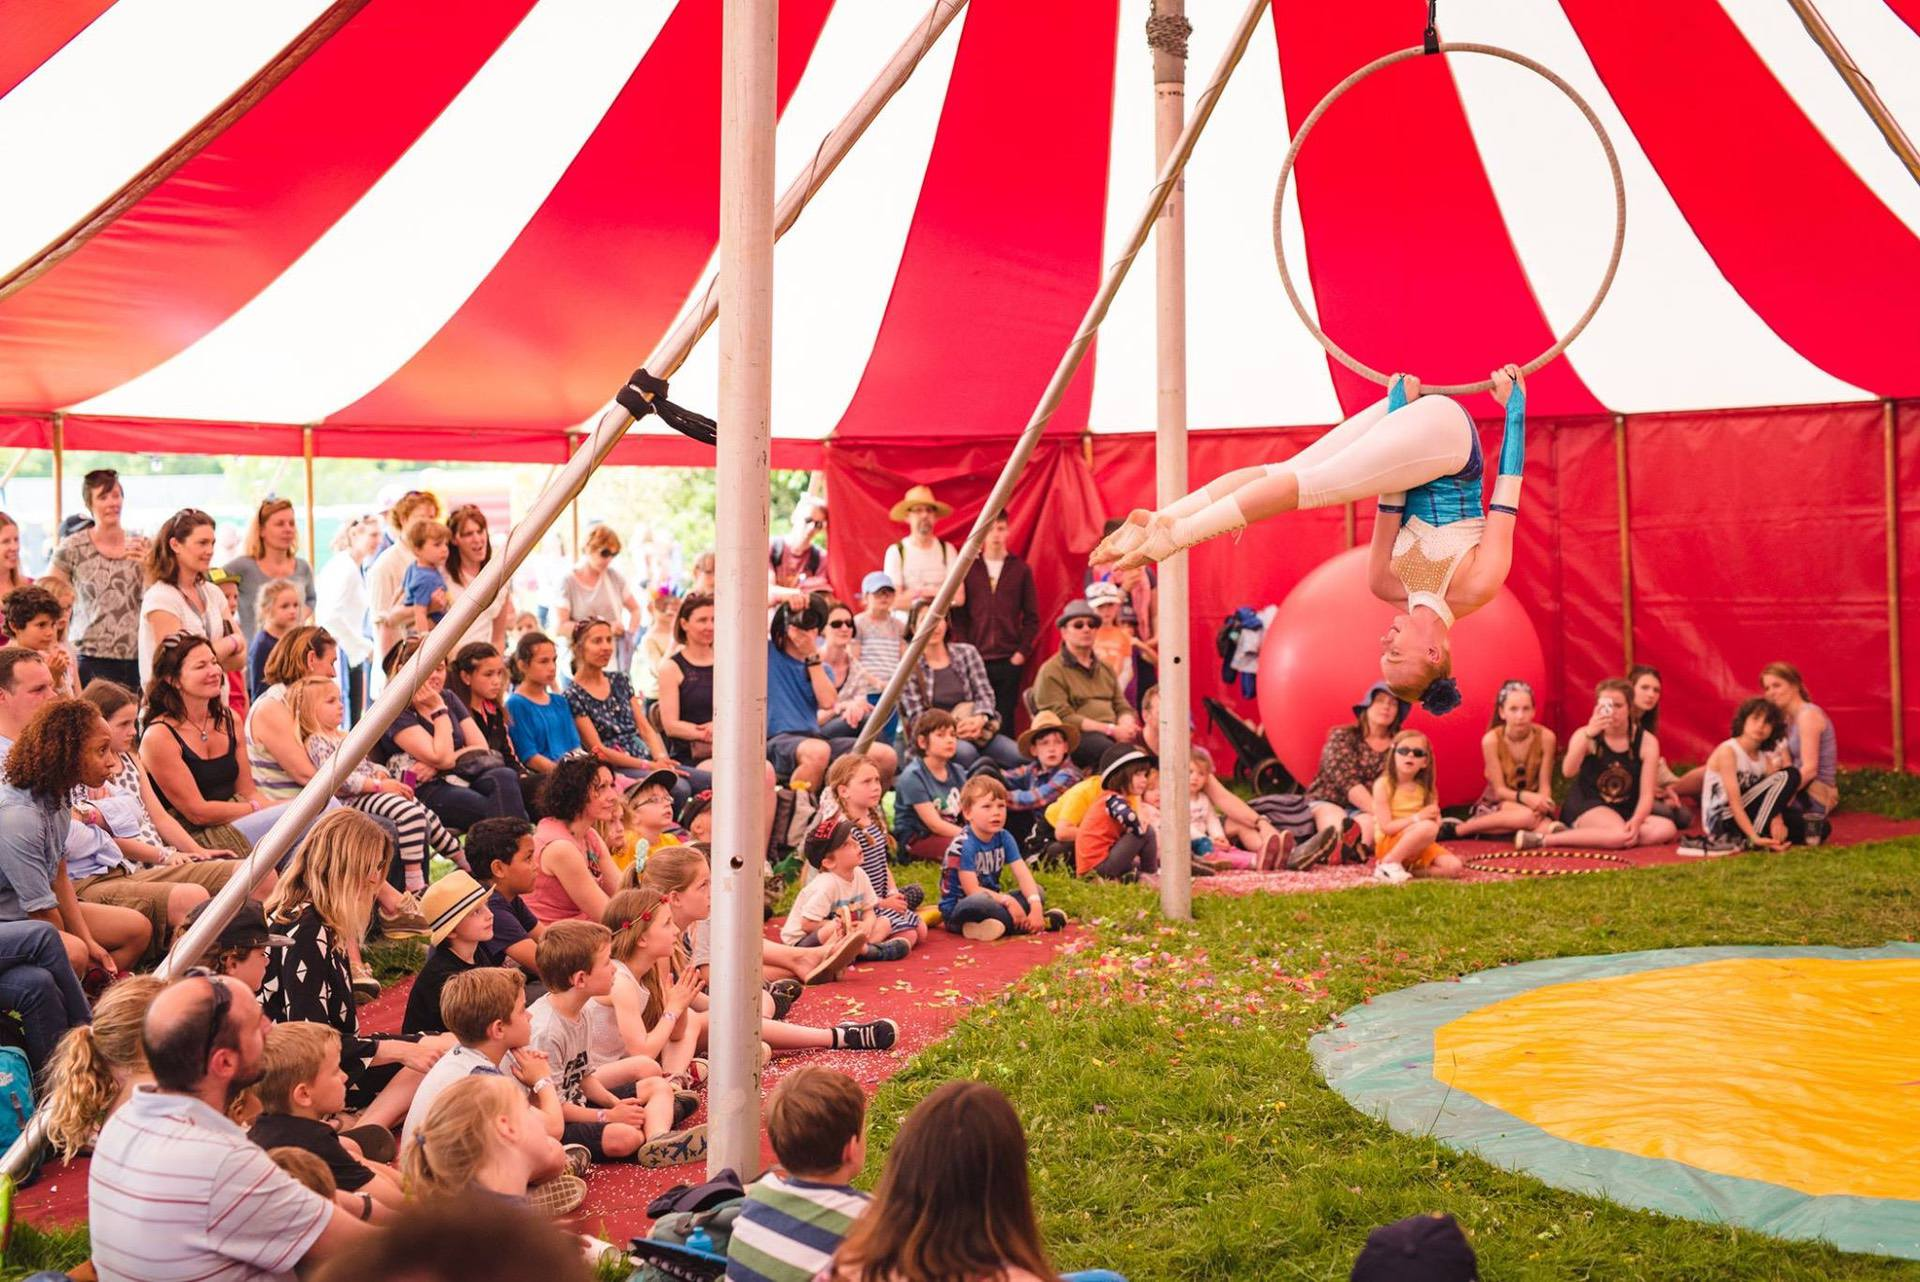 A childrens circus performance